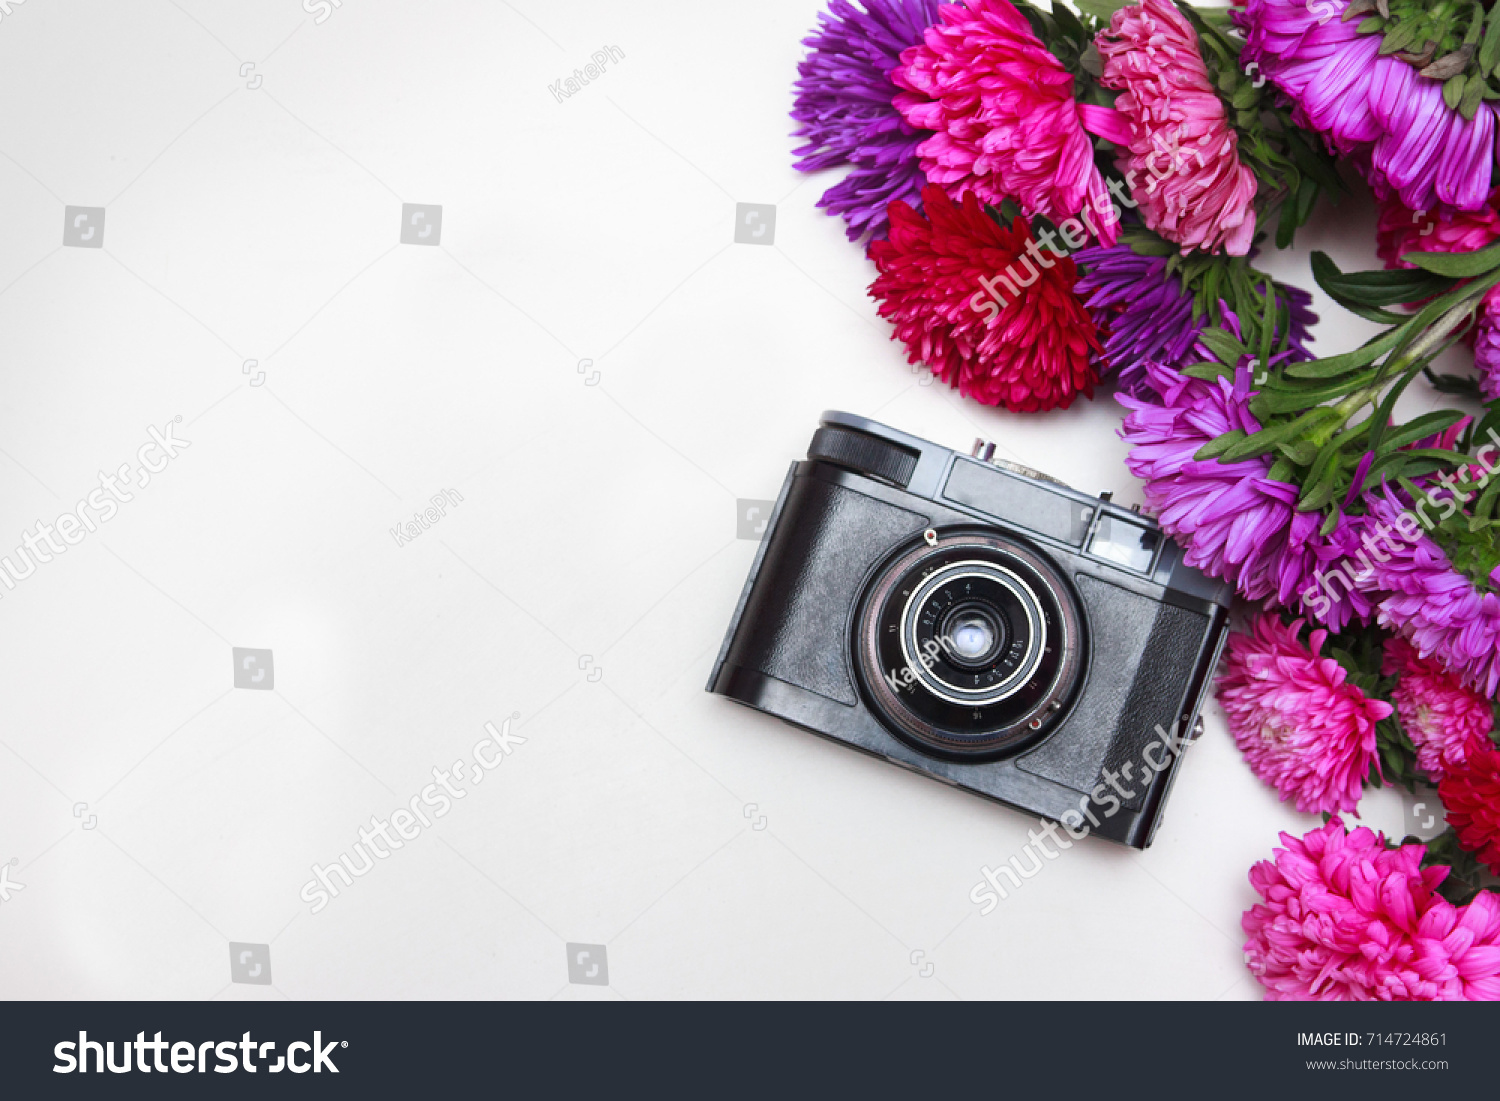 Flat Lay Floral Frame With Vintage Retro Camera Red And Pink Flowers Buds Pattern On